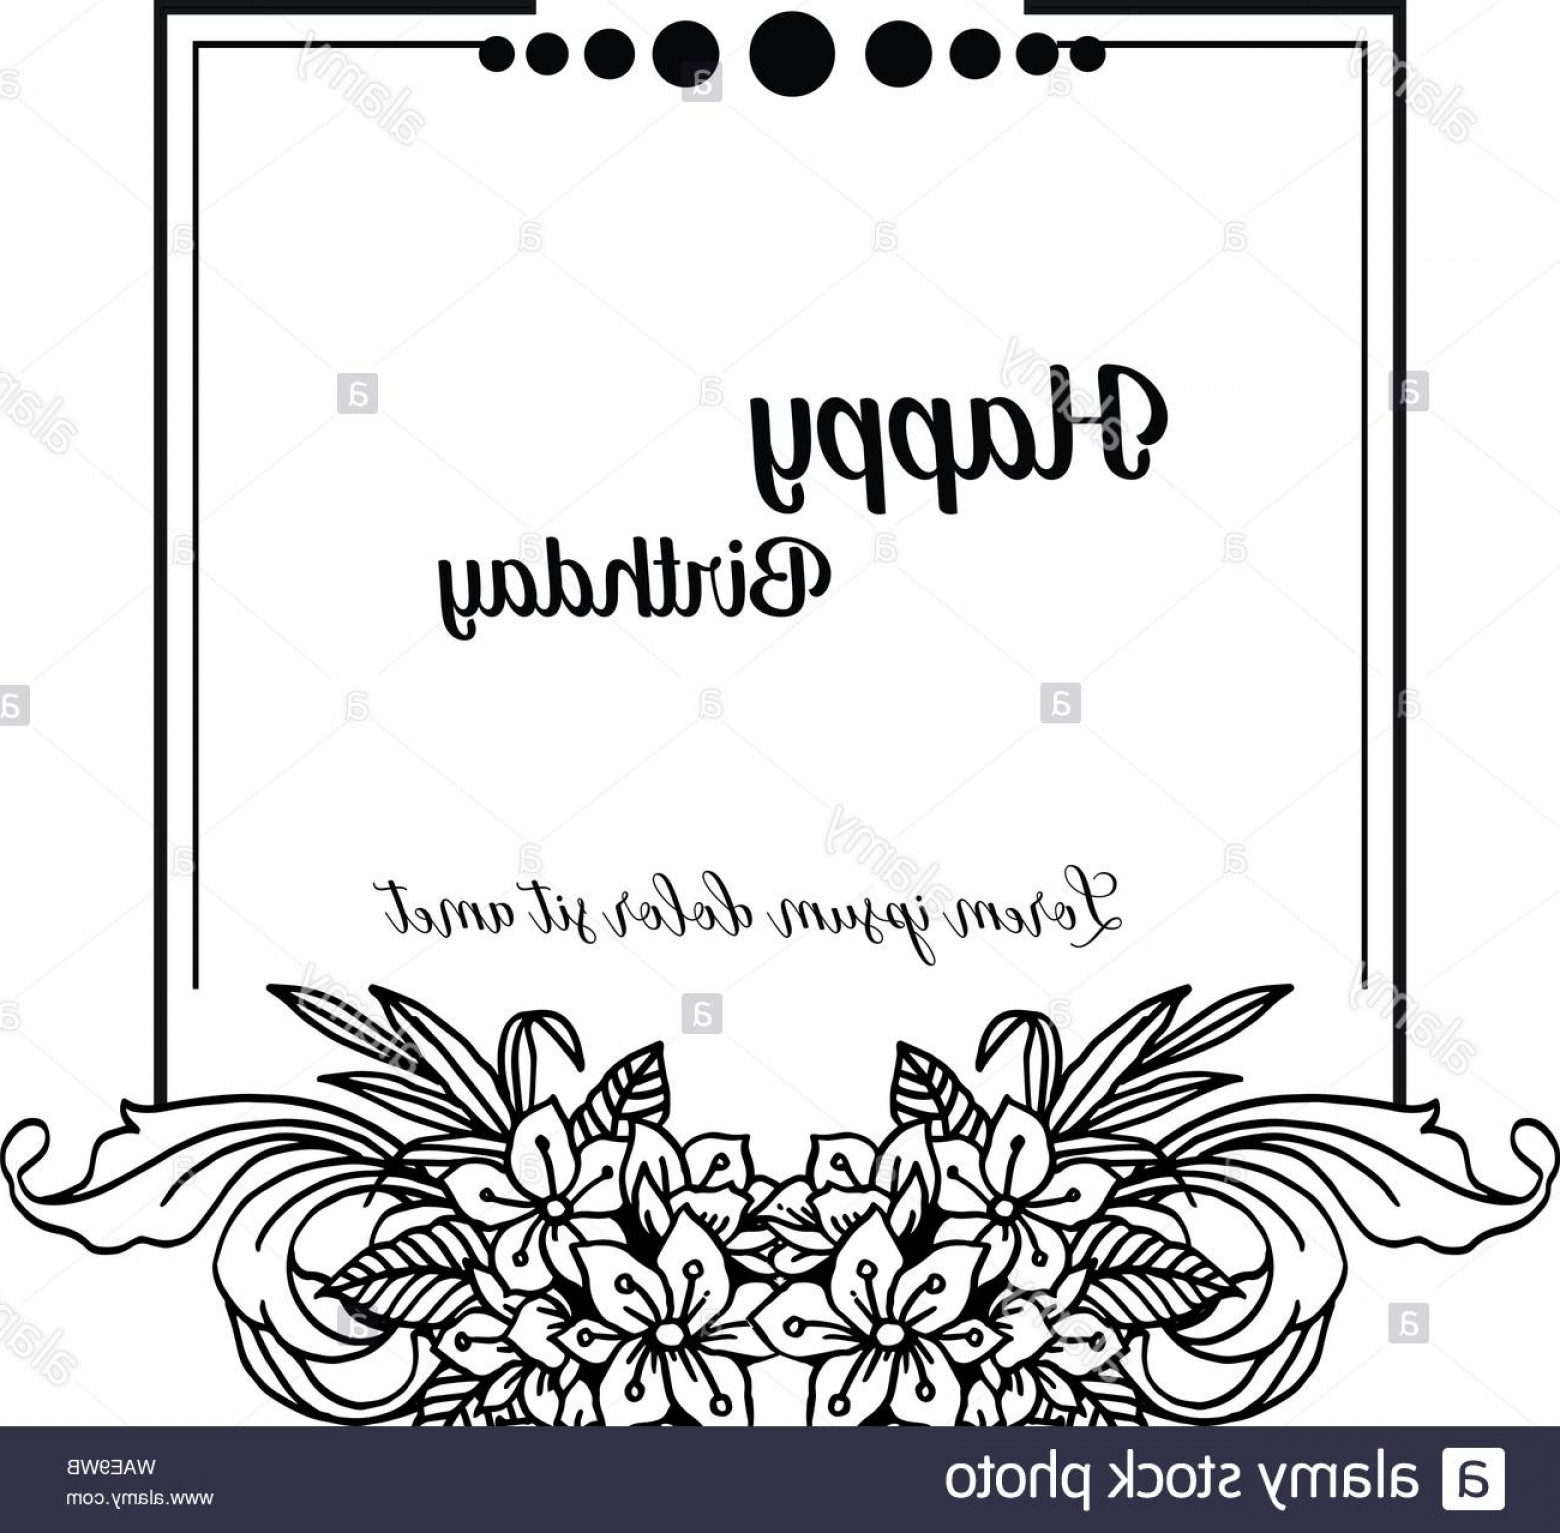 Happy Birthday Vector Art Backdrop: Design Crowd Of Flower Frame Isolated On A White Backdrop For Celebration Invitation Card Happy Birthday Vector Illustration Image